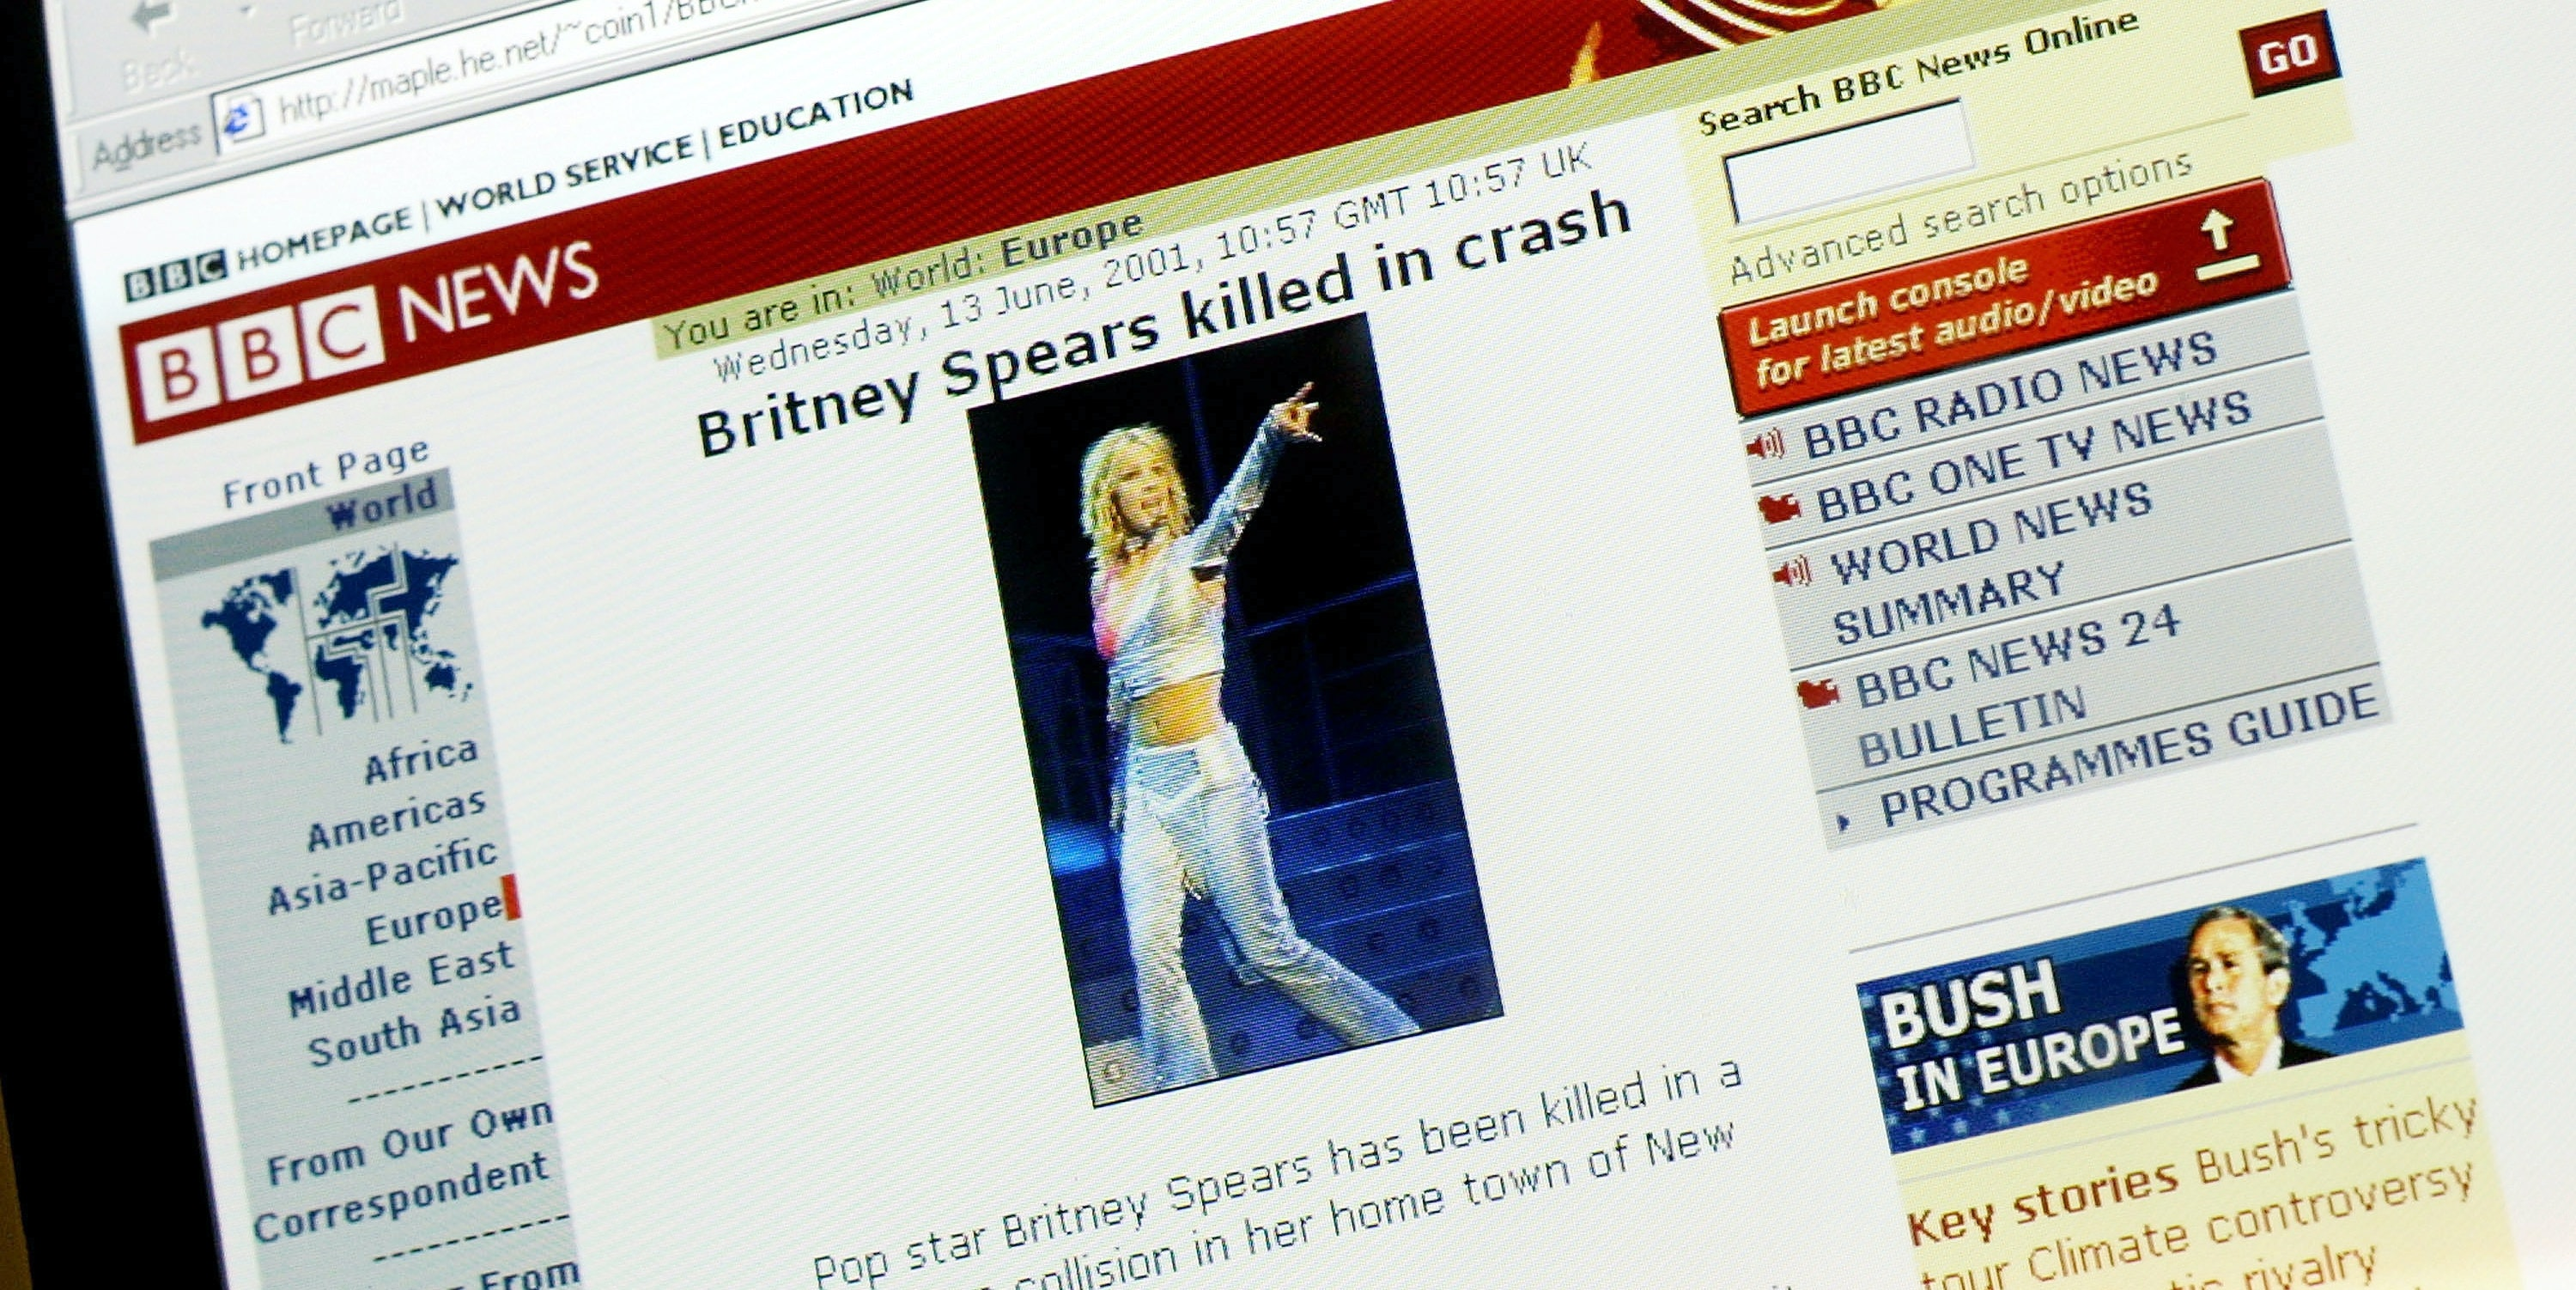 A website, falsely identifying itself as 'BBC News' with links connecting it to the real 'BBC News,' reports the death of pop singer Britney Spears June 13, 2001 in London, England.